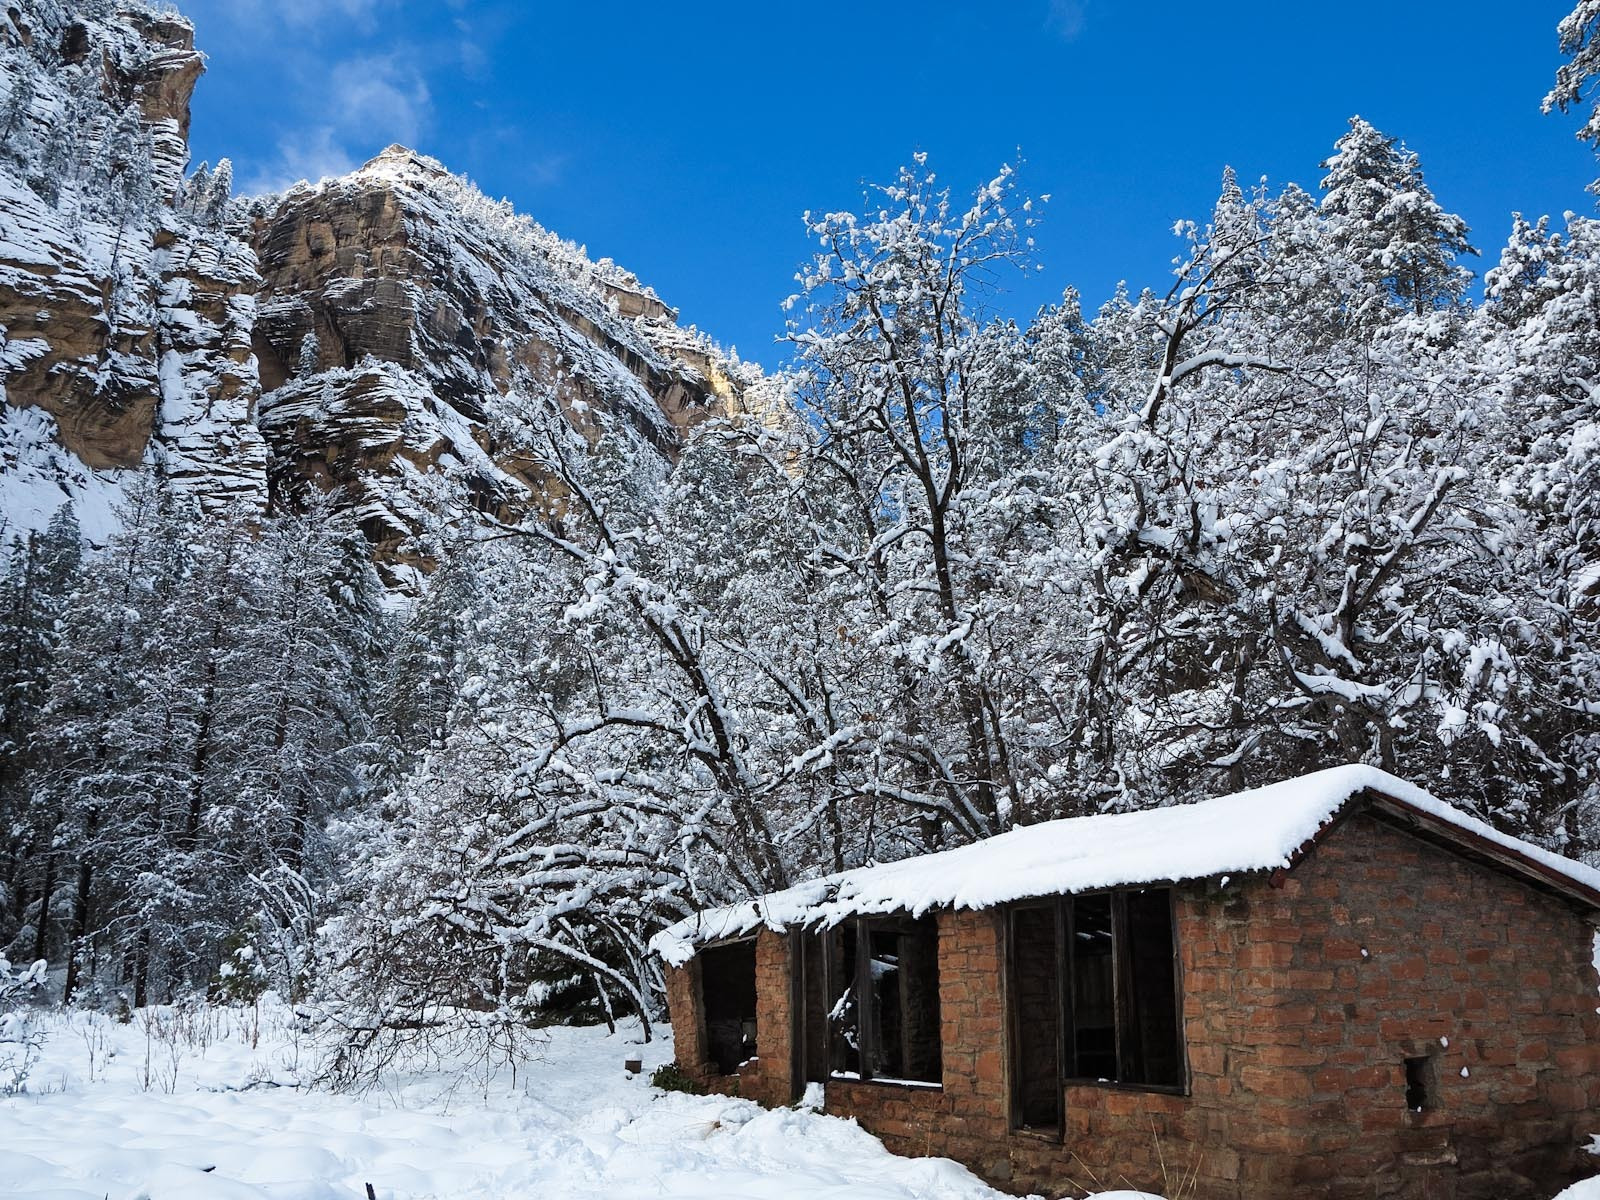 Photograph West Fork Cabin by Norm Cooper on 500px